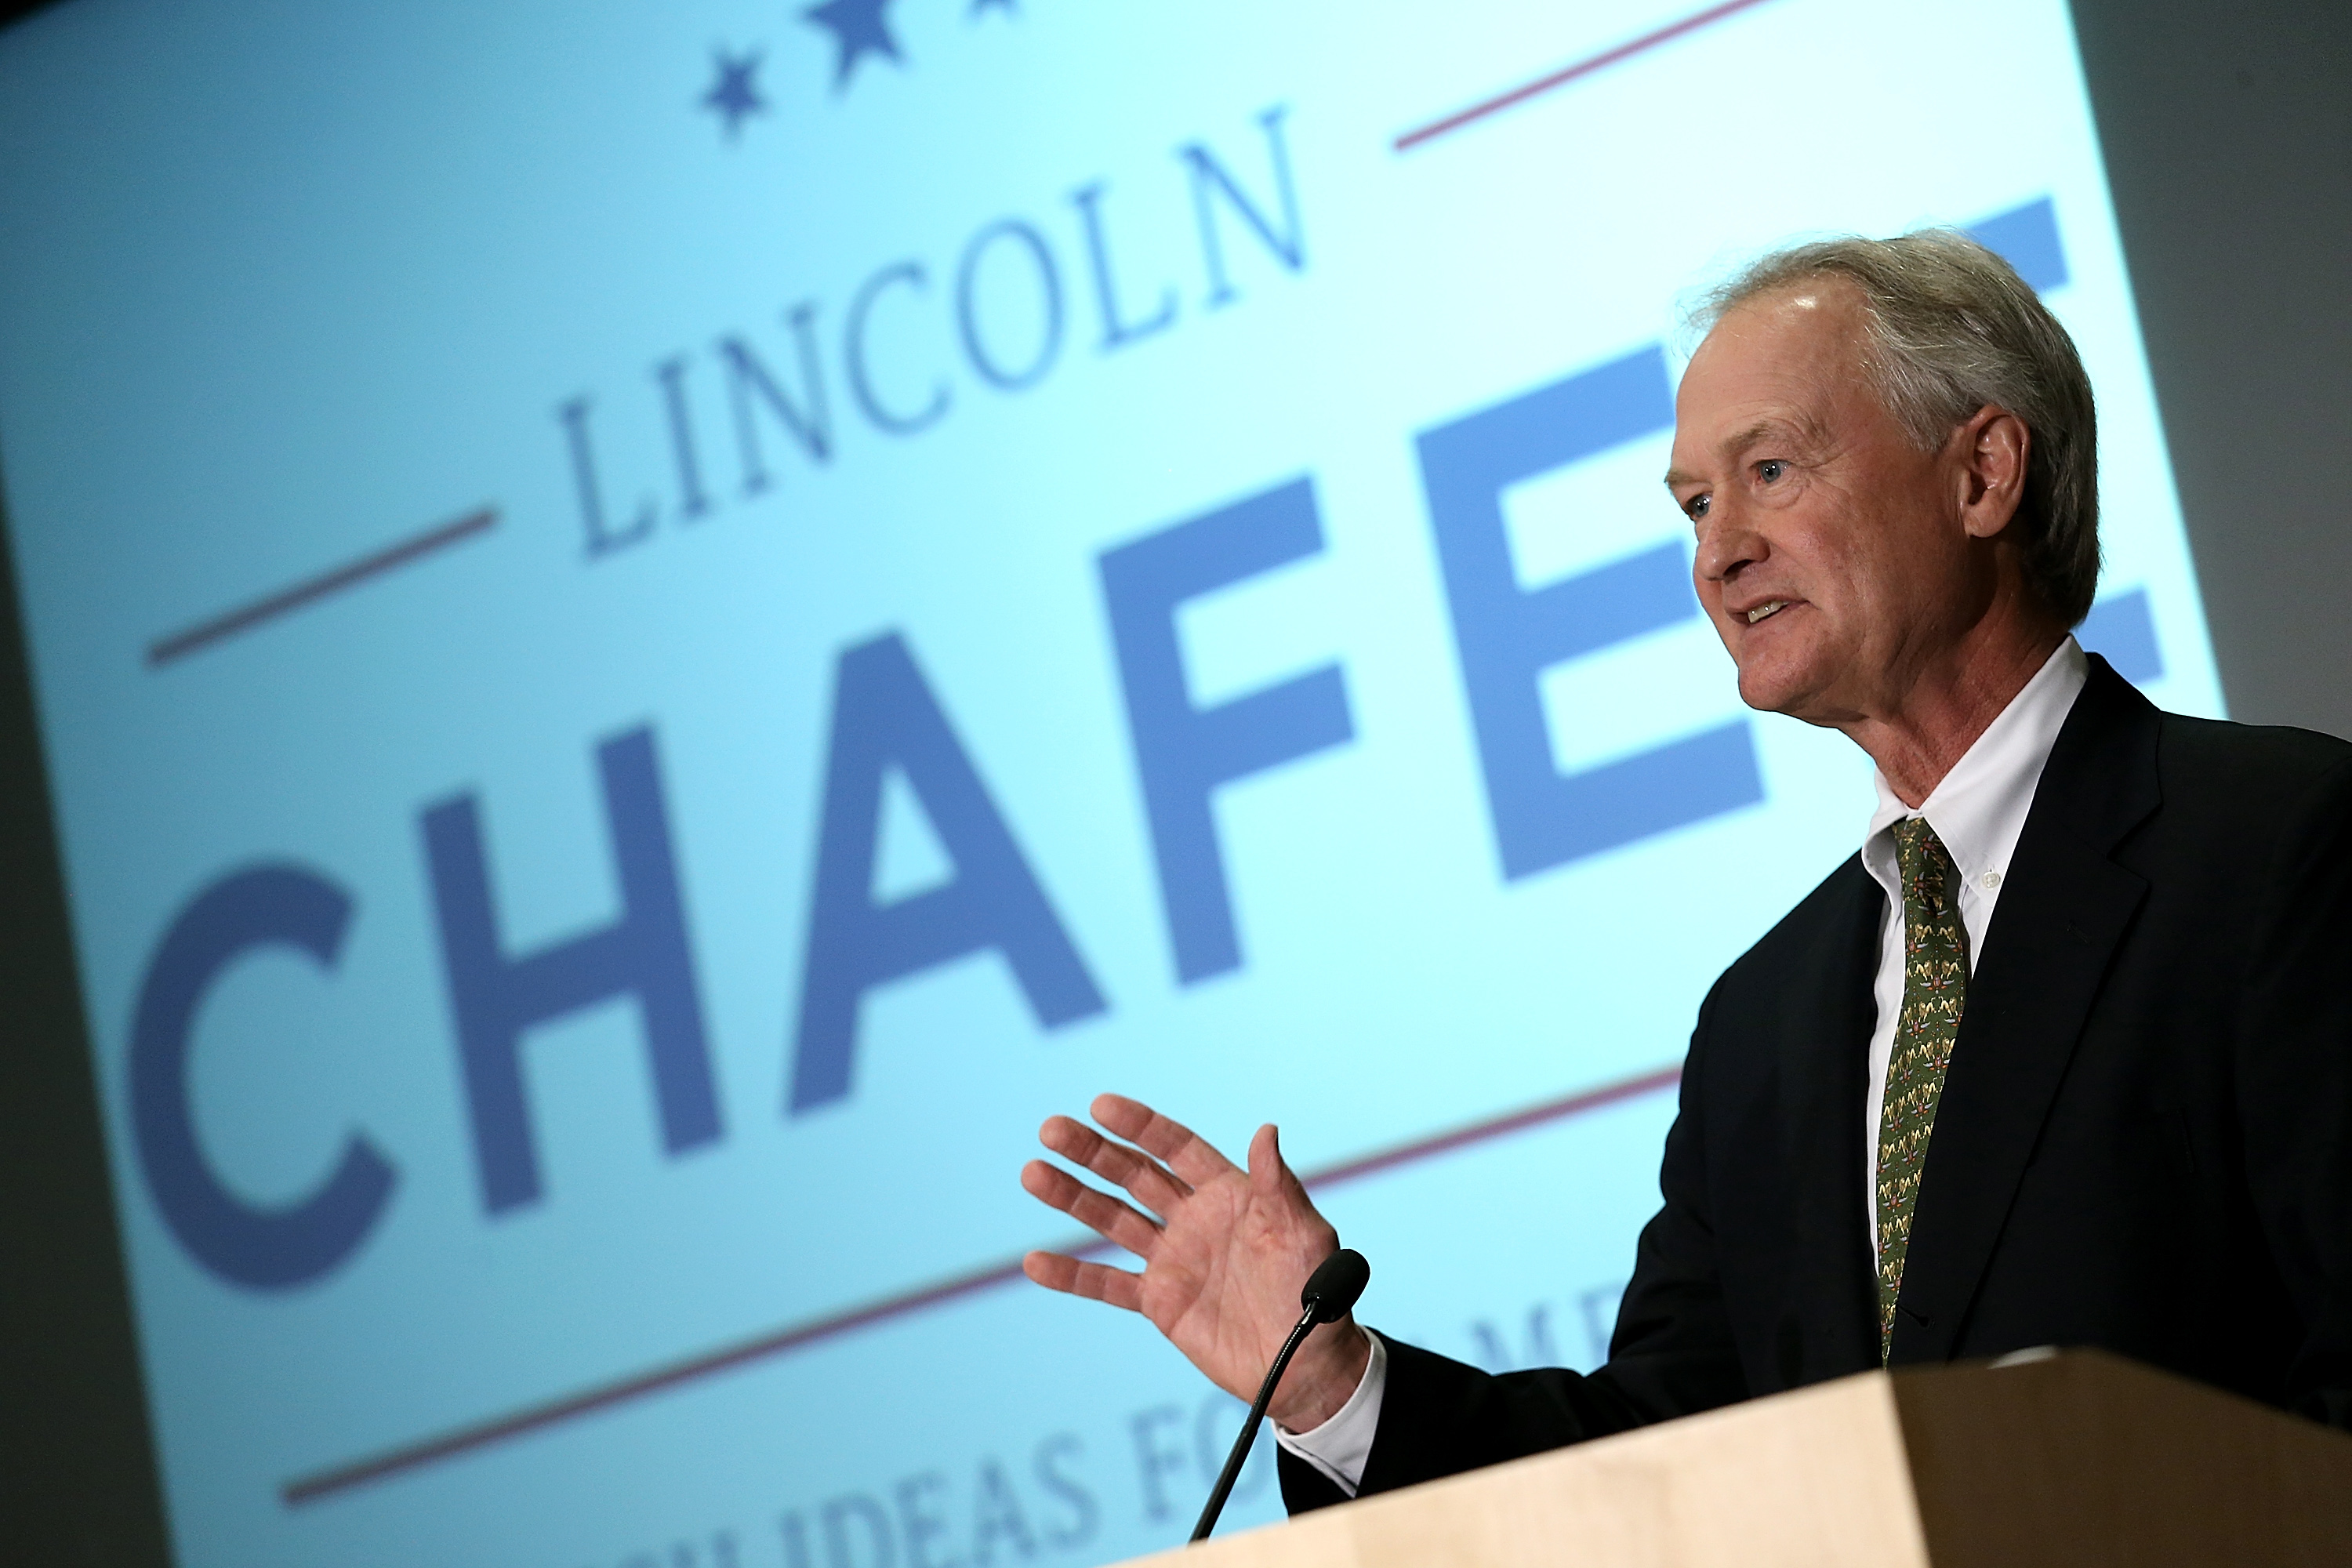 Democratic presidential candidate and former Sen. Lincoln Chafee (D-RI) announces his candidacy for the U.S. presidency at George Mason University June 3, 2015 in Arlington, Virginia. Chafee joins Hillary Clinton, Bernie Sanders and Martin O'Malley in seeking the Democratic nomination.